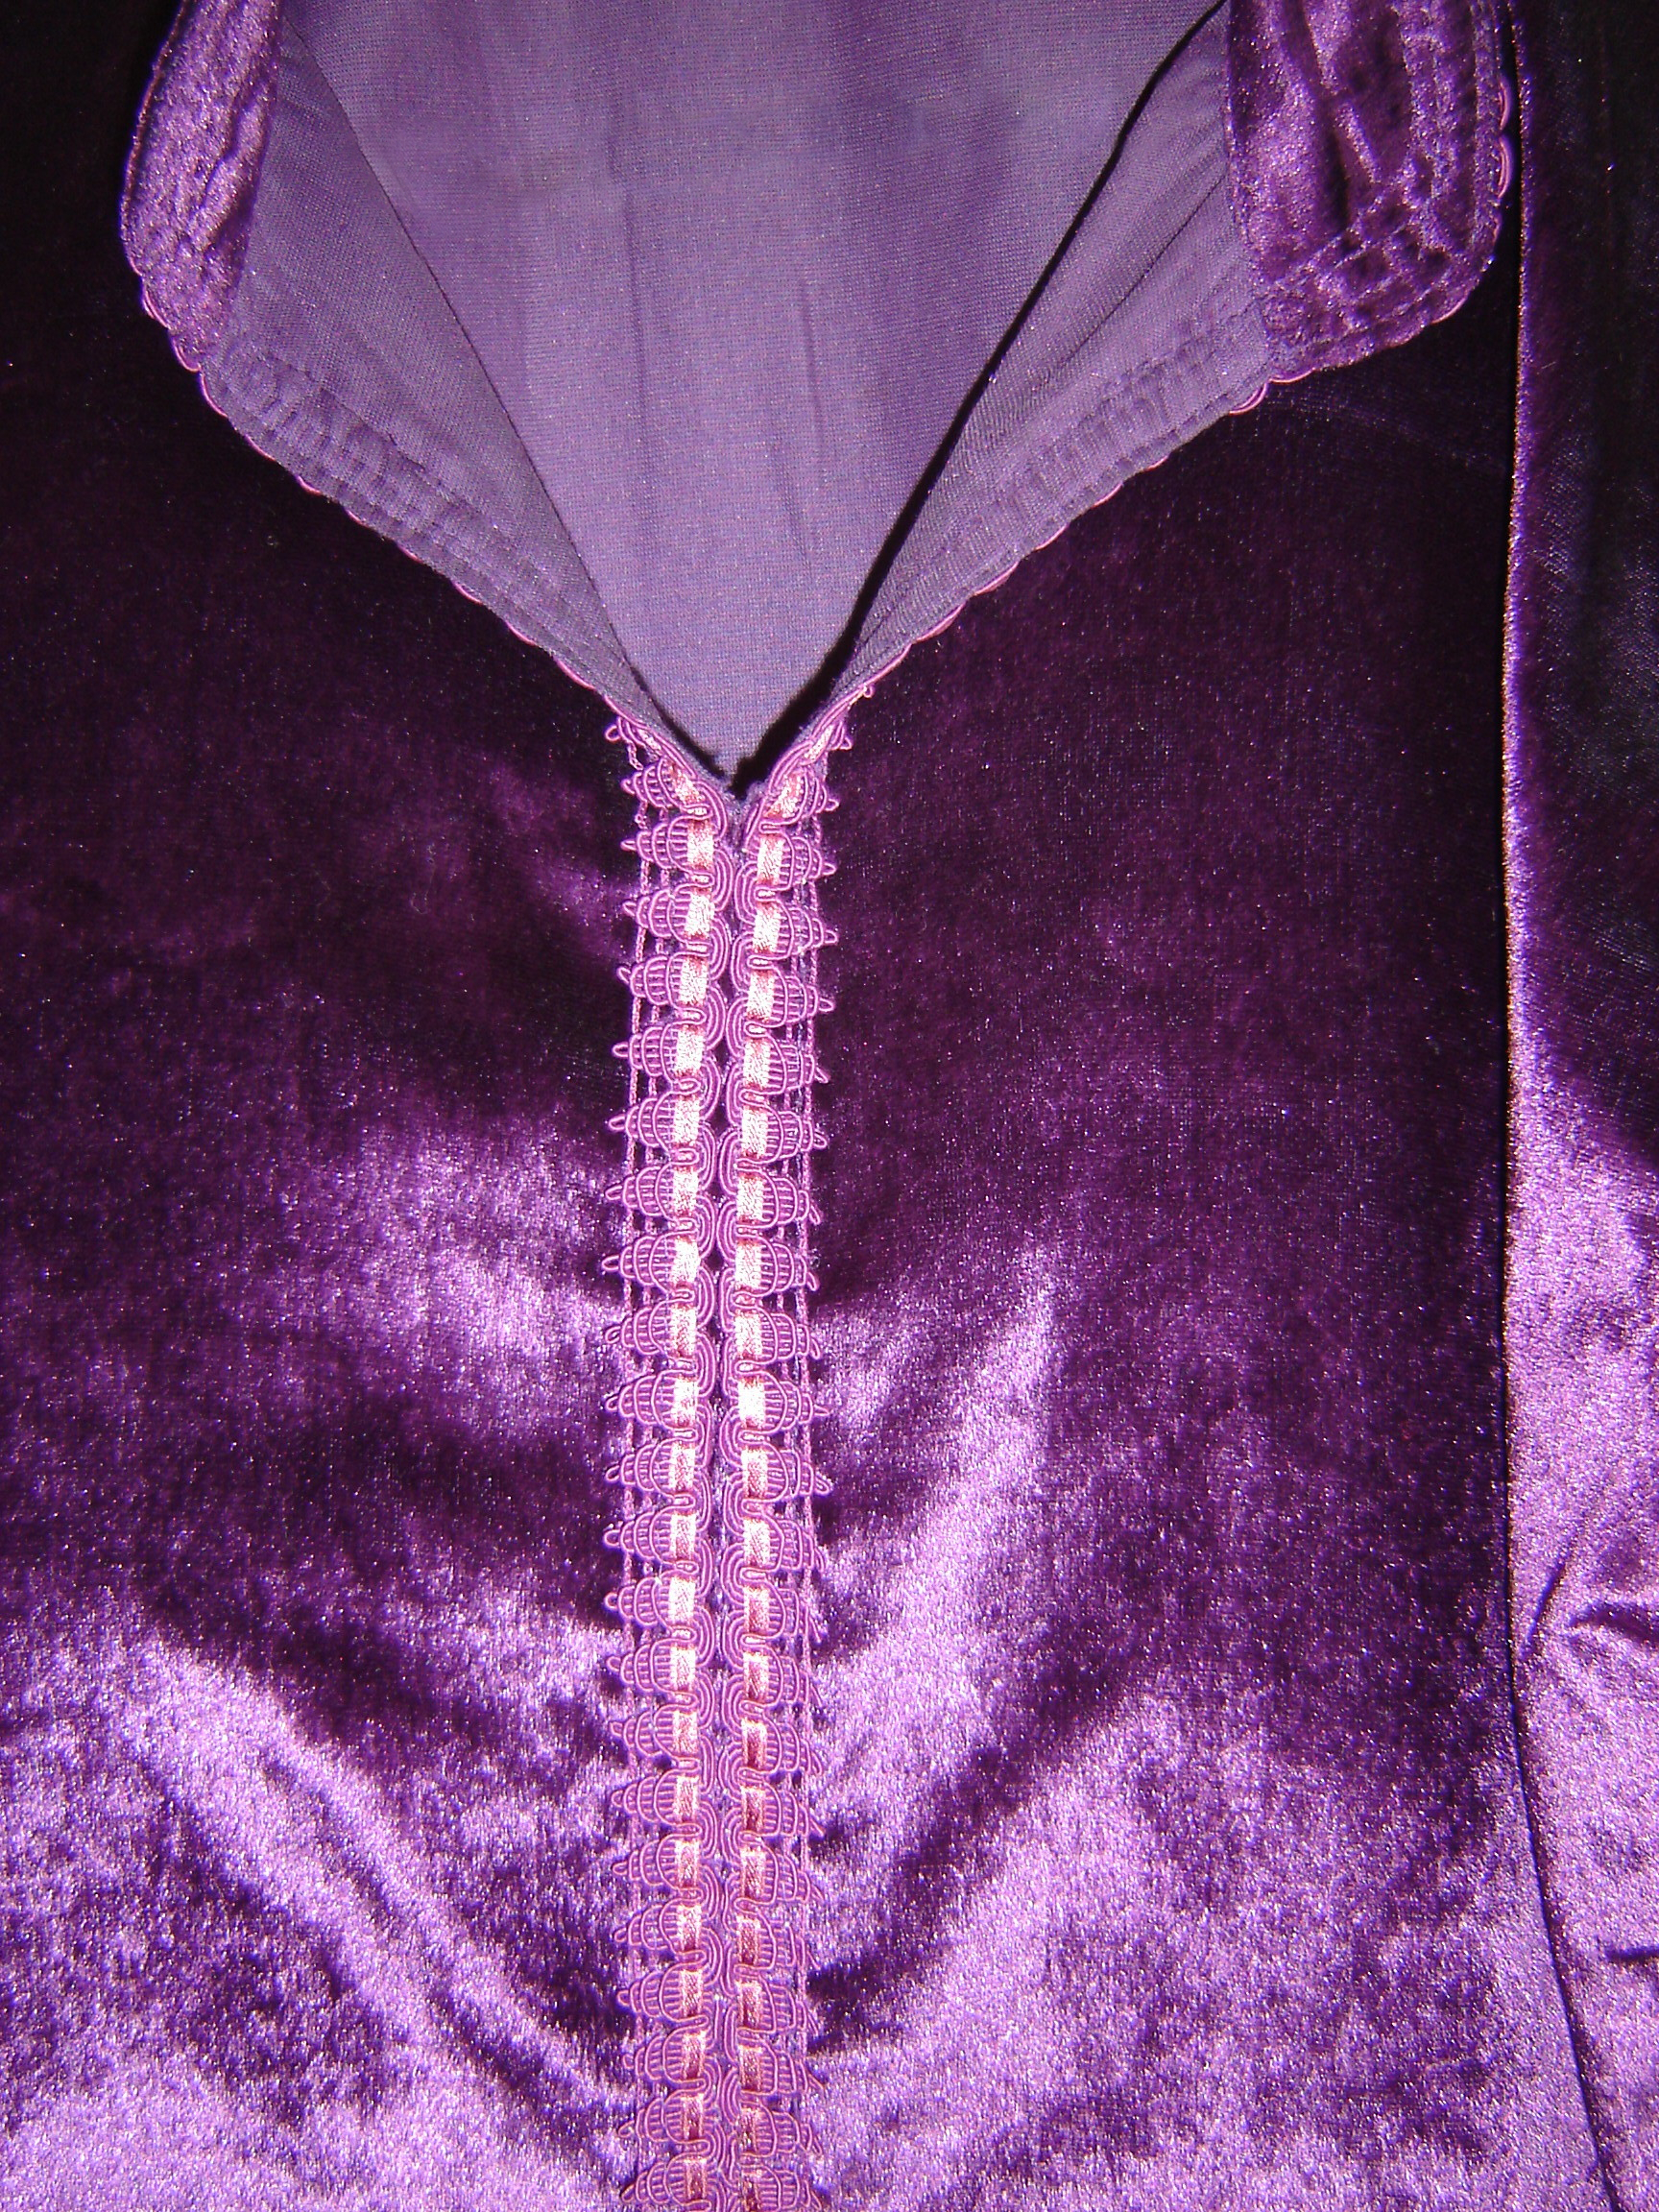 Plum velvet Moroccan shirt, showing embroidery down front